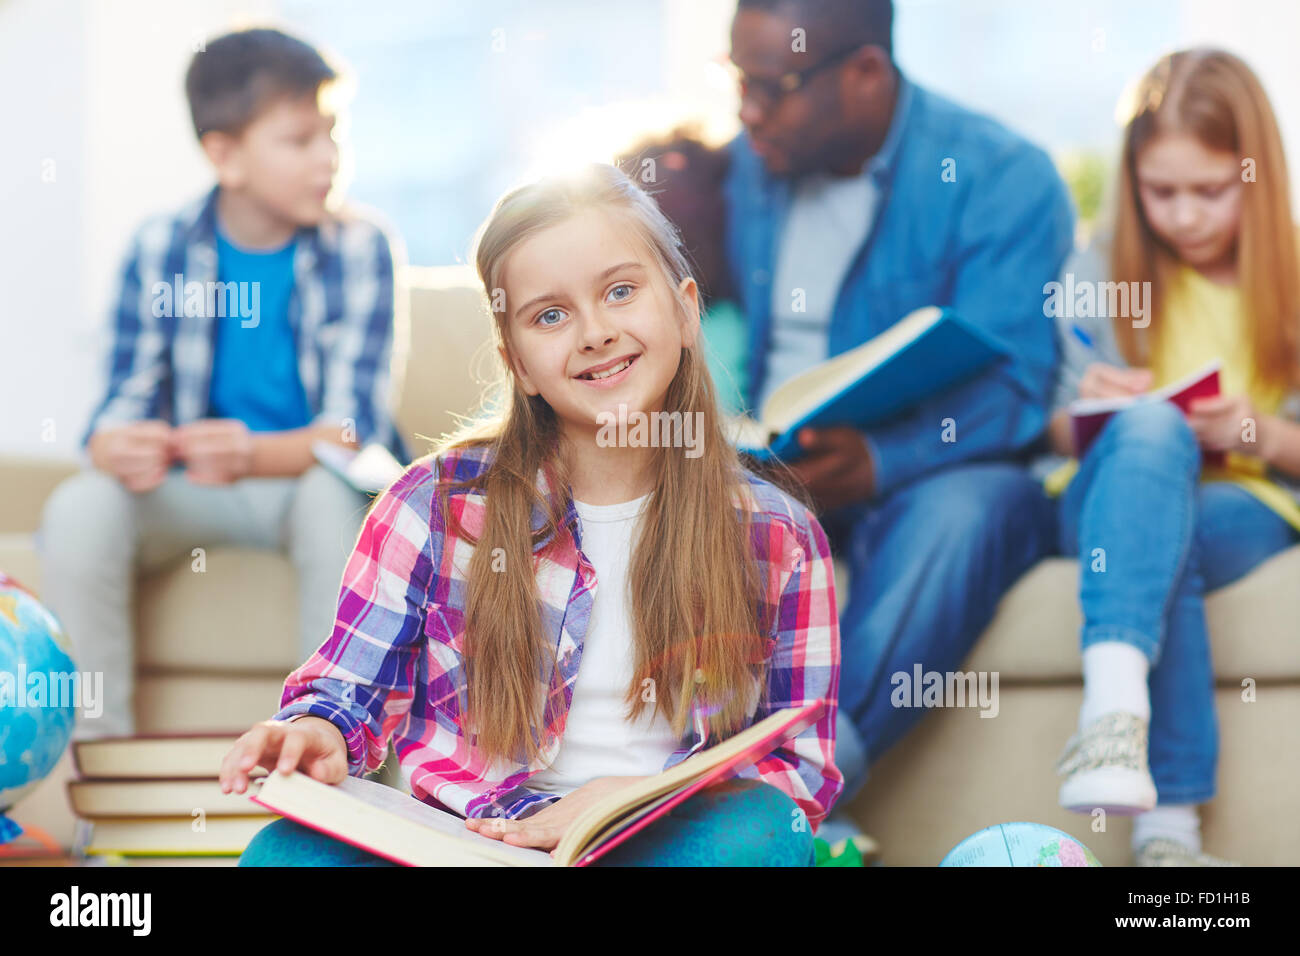 Pretty schoolgirl looking at camera on background of other pupils and their teacher - Stock Image